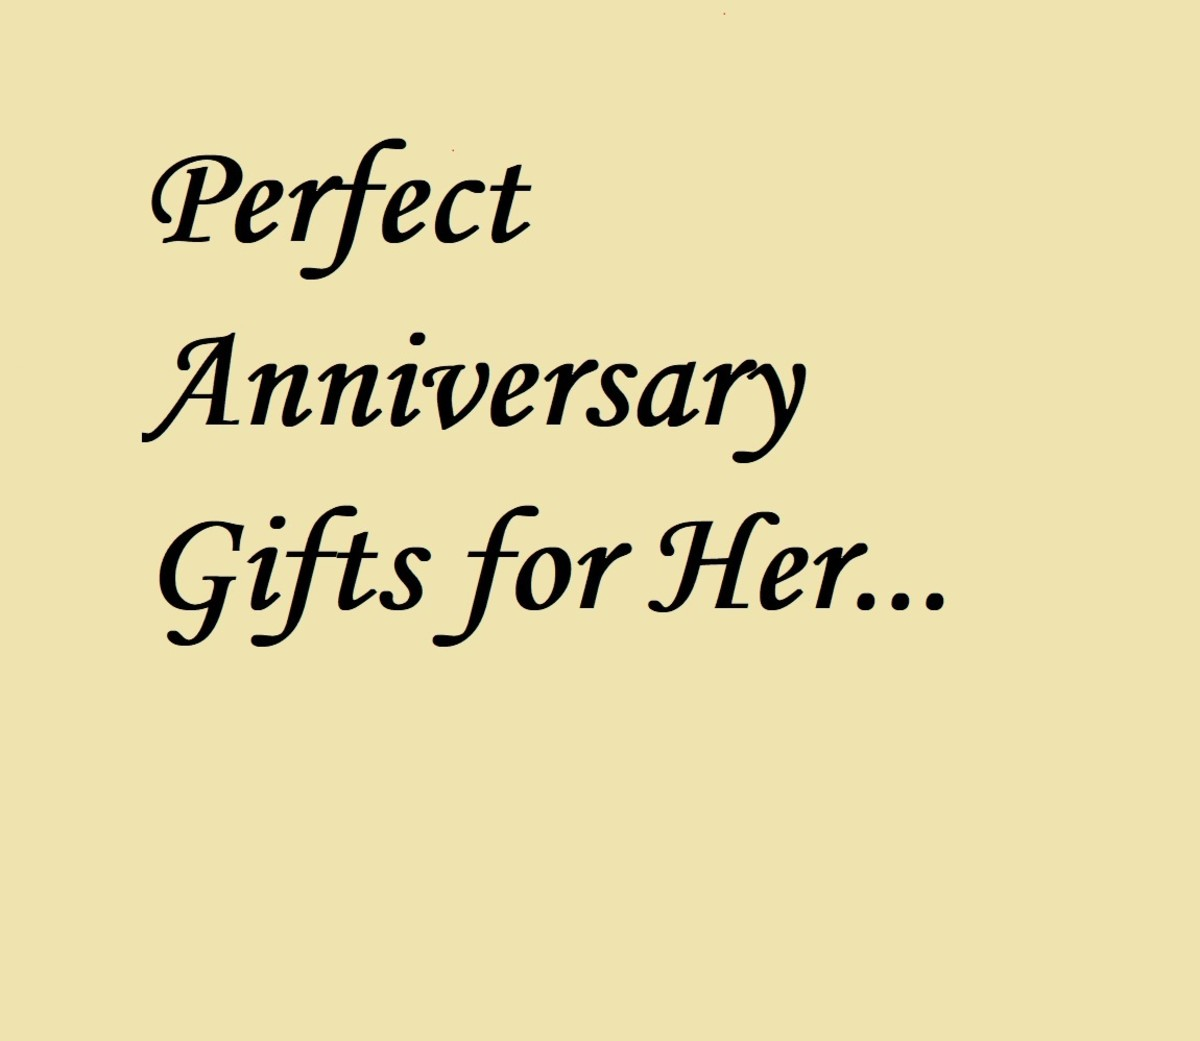 Perfect Anniversary Gifts for Her